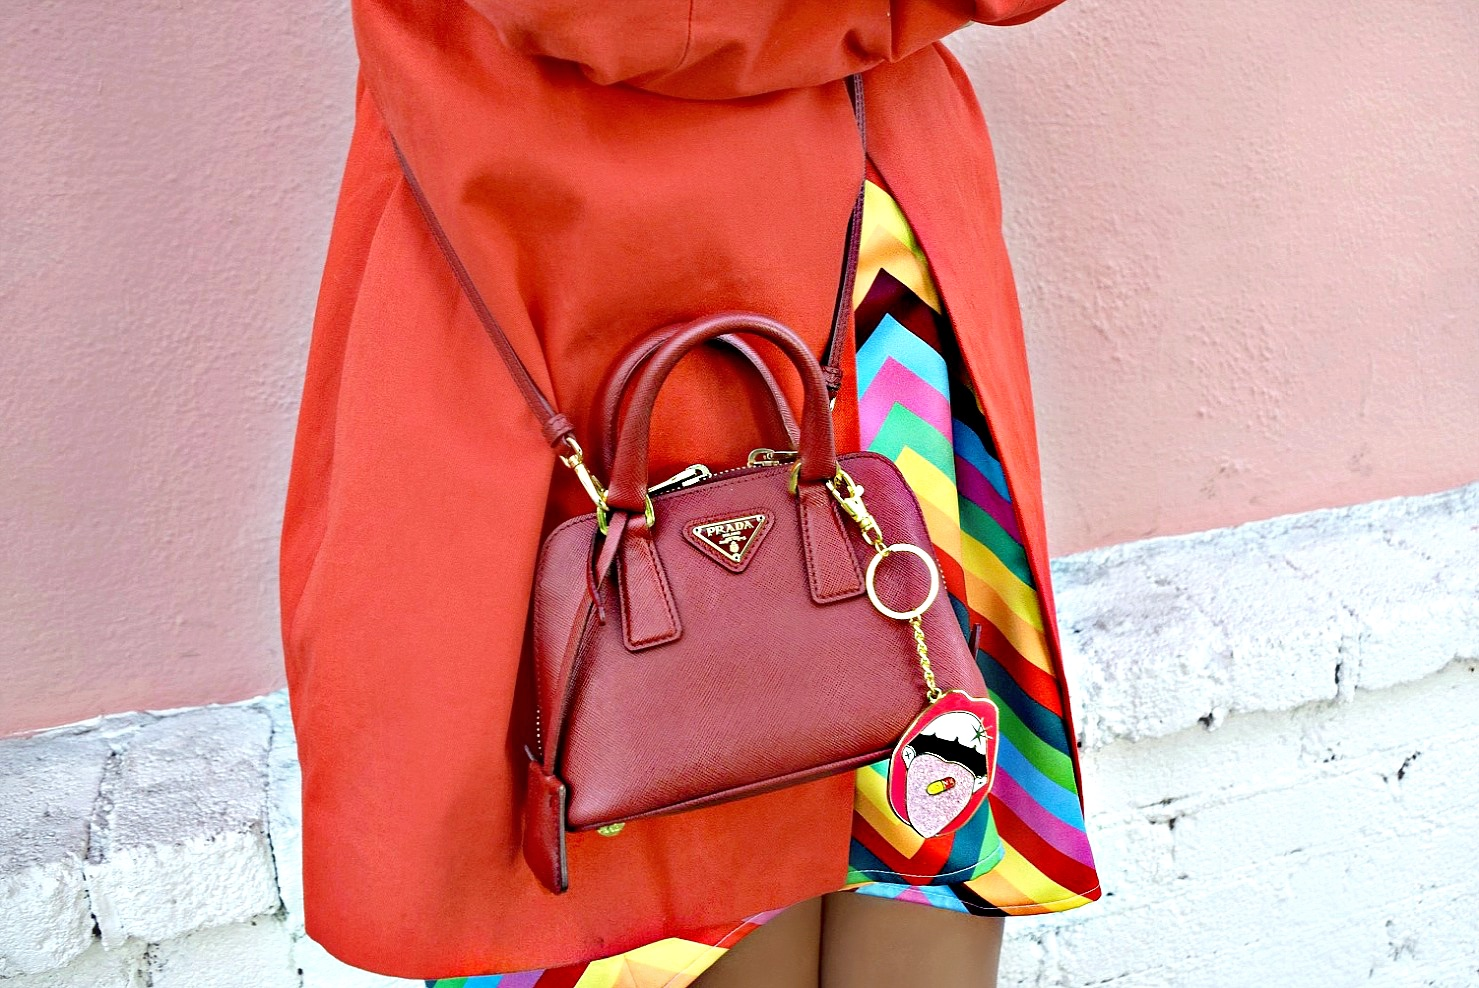 Red Prada Mini Bag/Poppy Lissiman Charm/Outfit Details: To Style, With Love